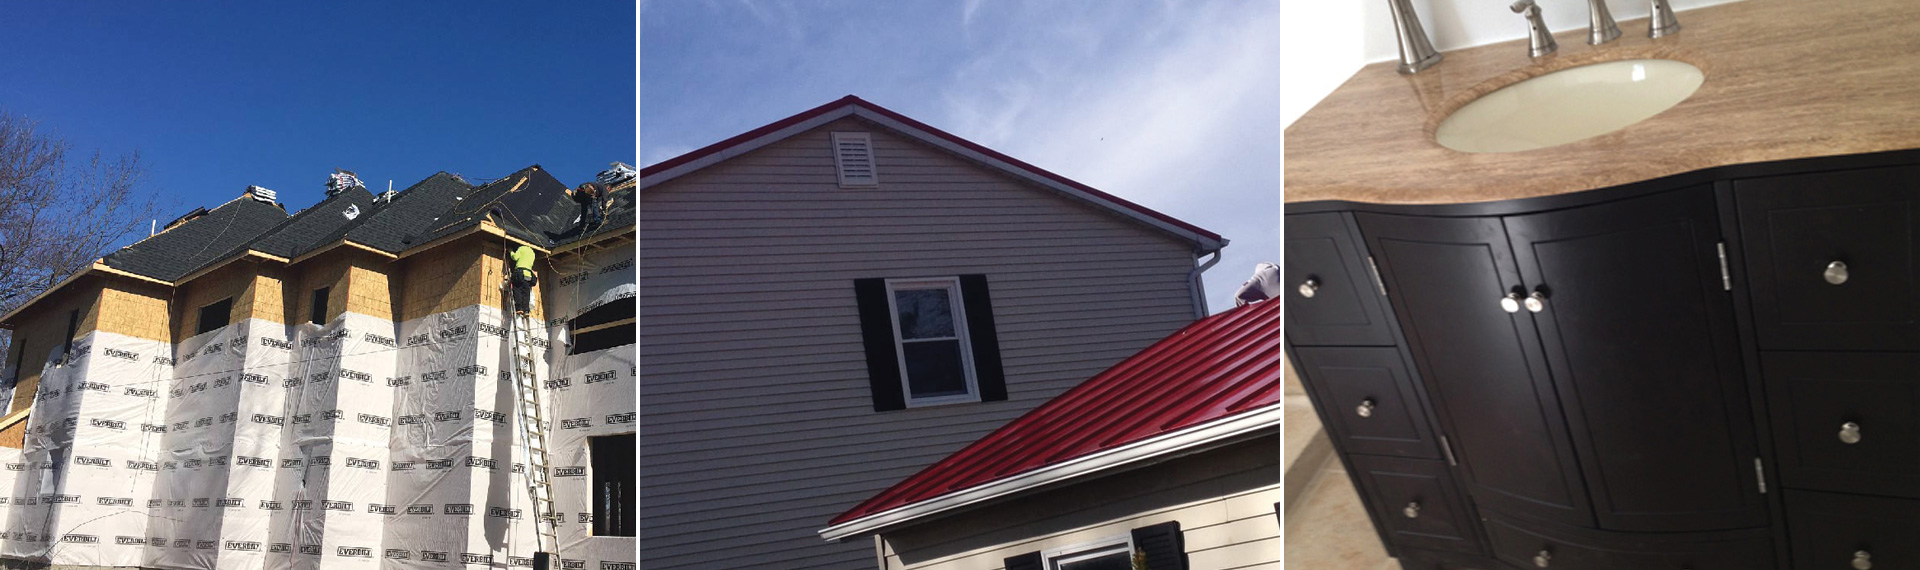 Arlington Construction & Roofing Manassas VA